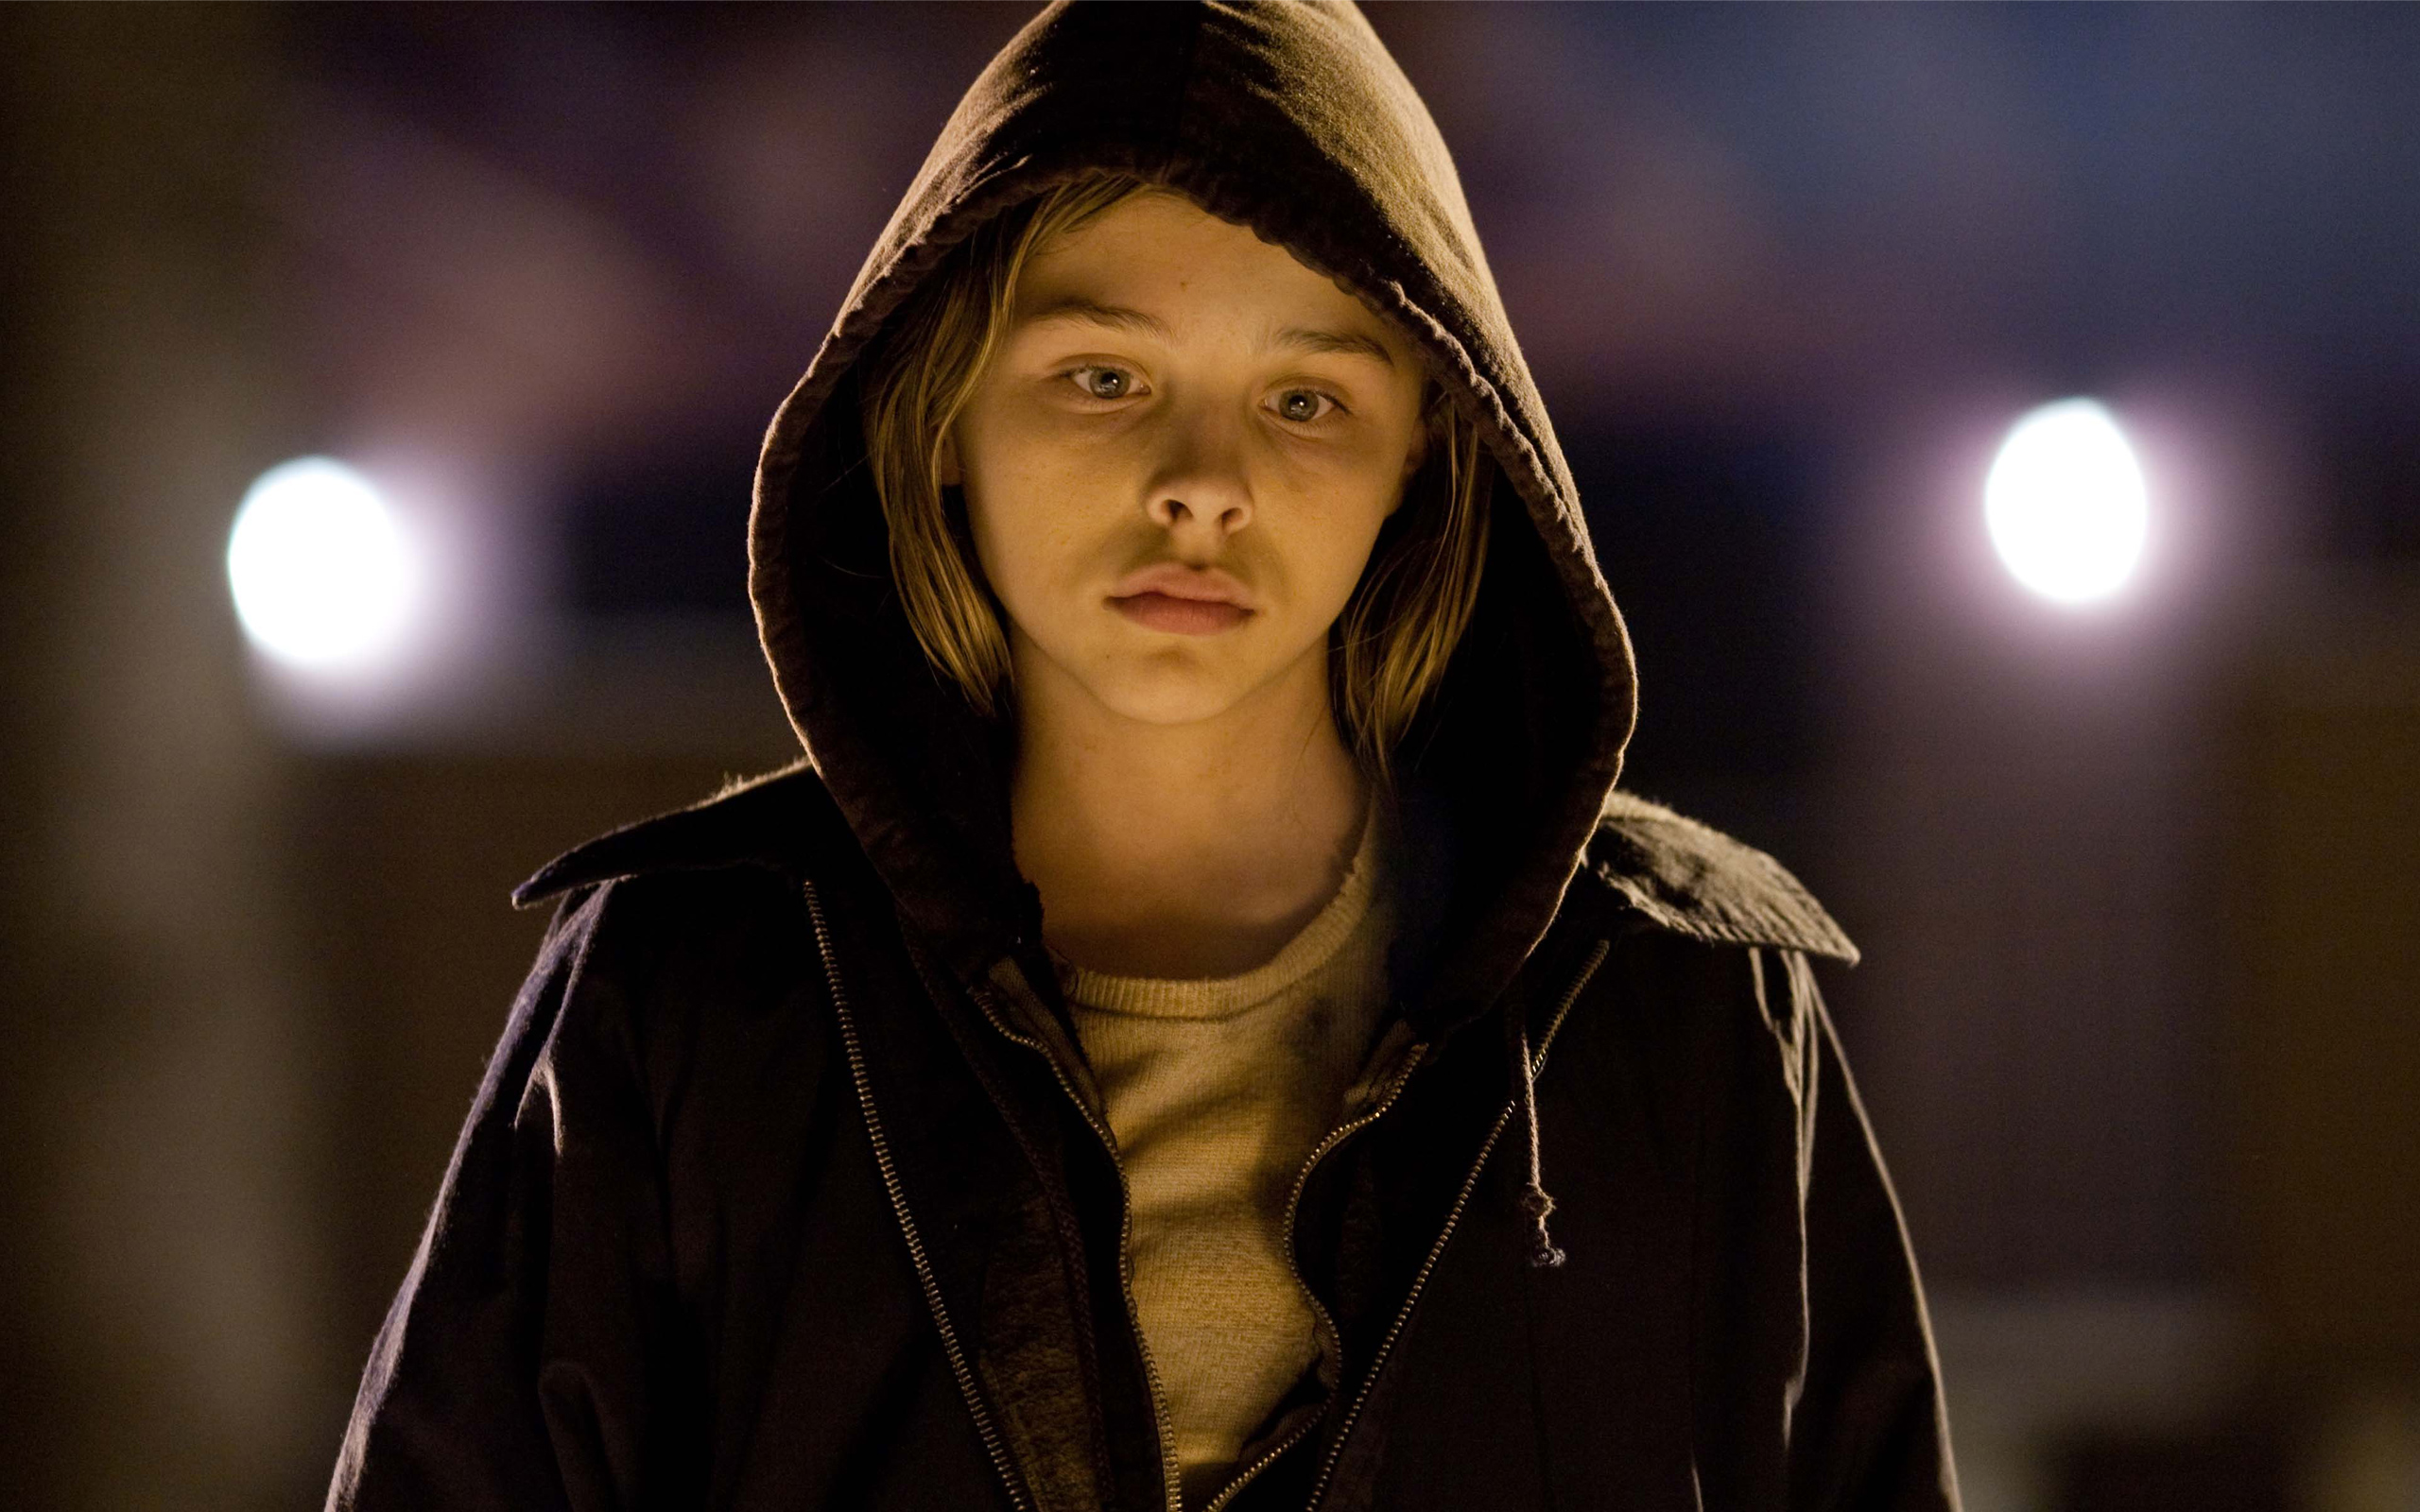 Chloe Moretz Let Me In Movie